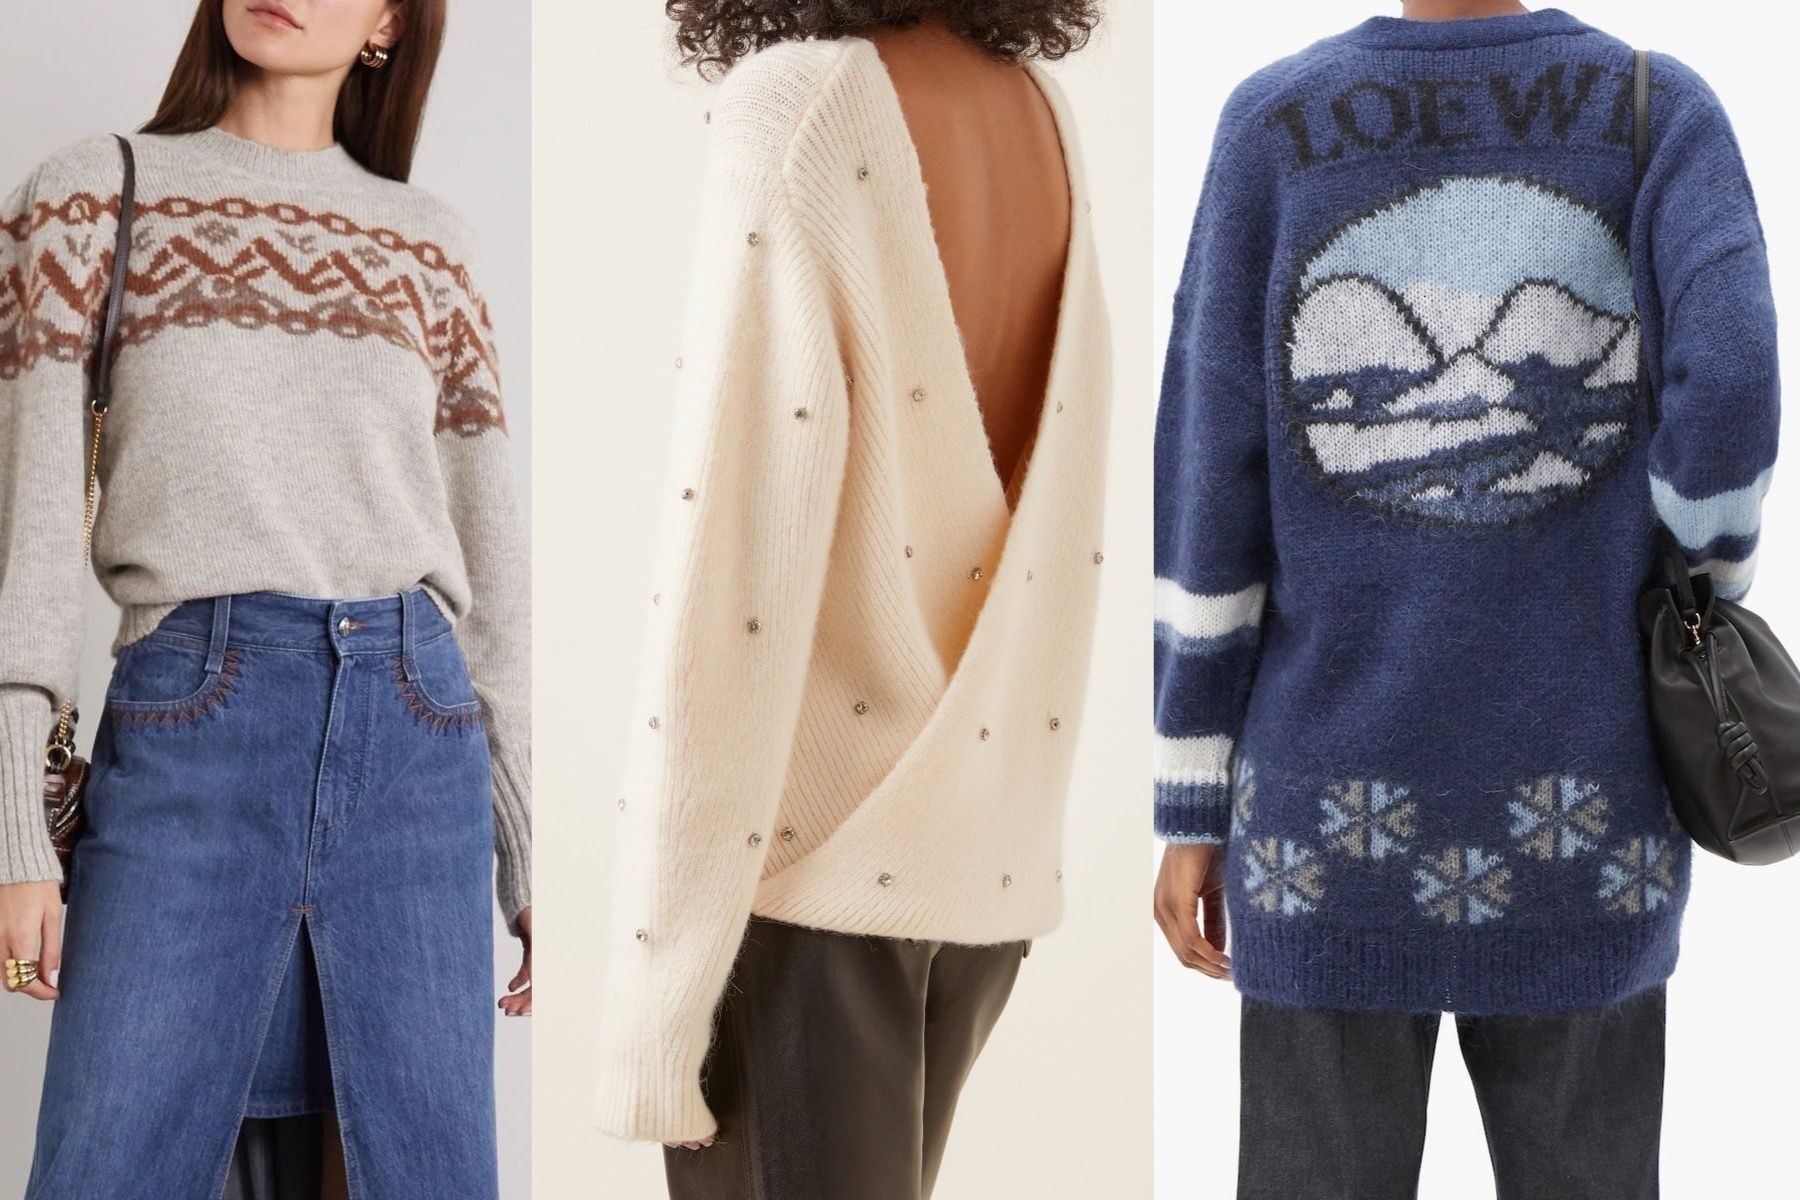 10 Designer Christmas Jumpers To Wear This Winter